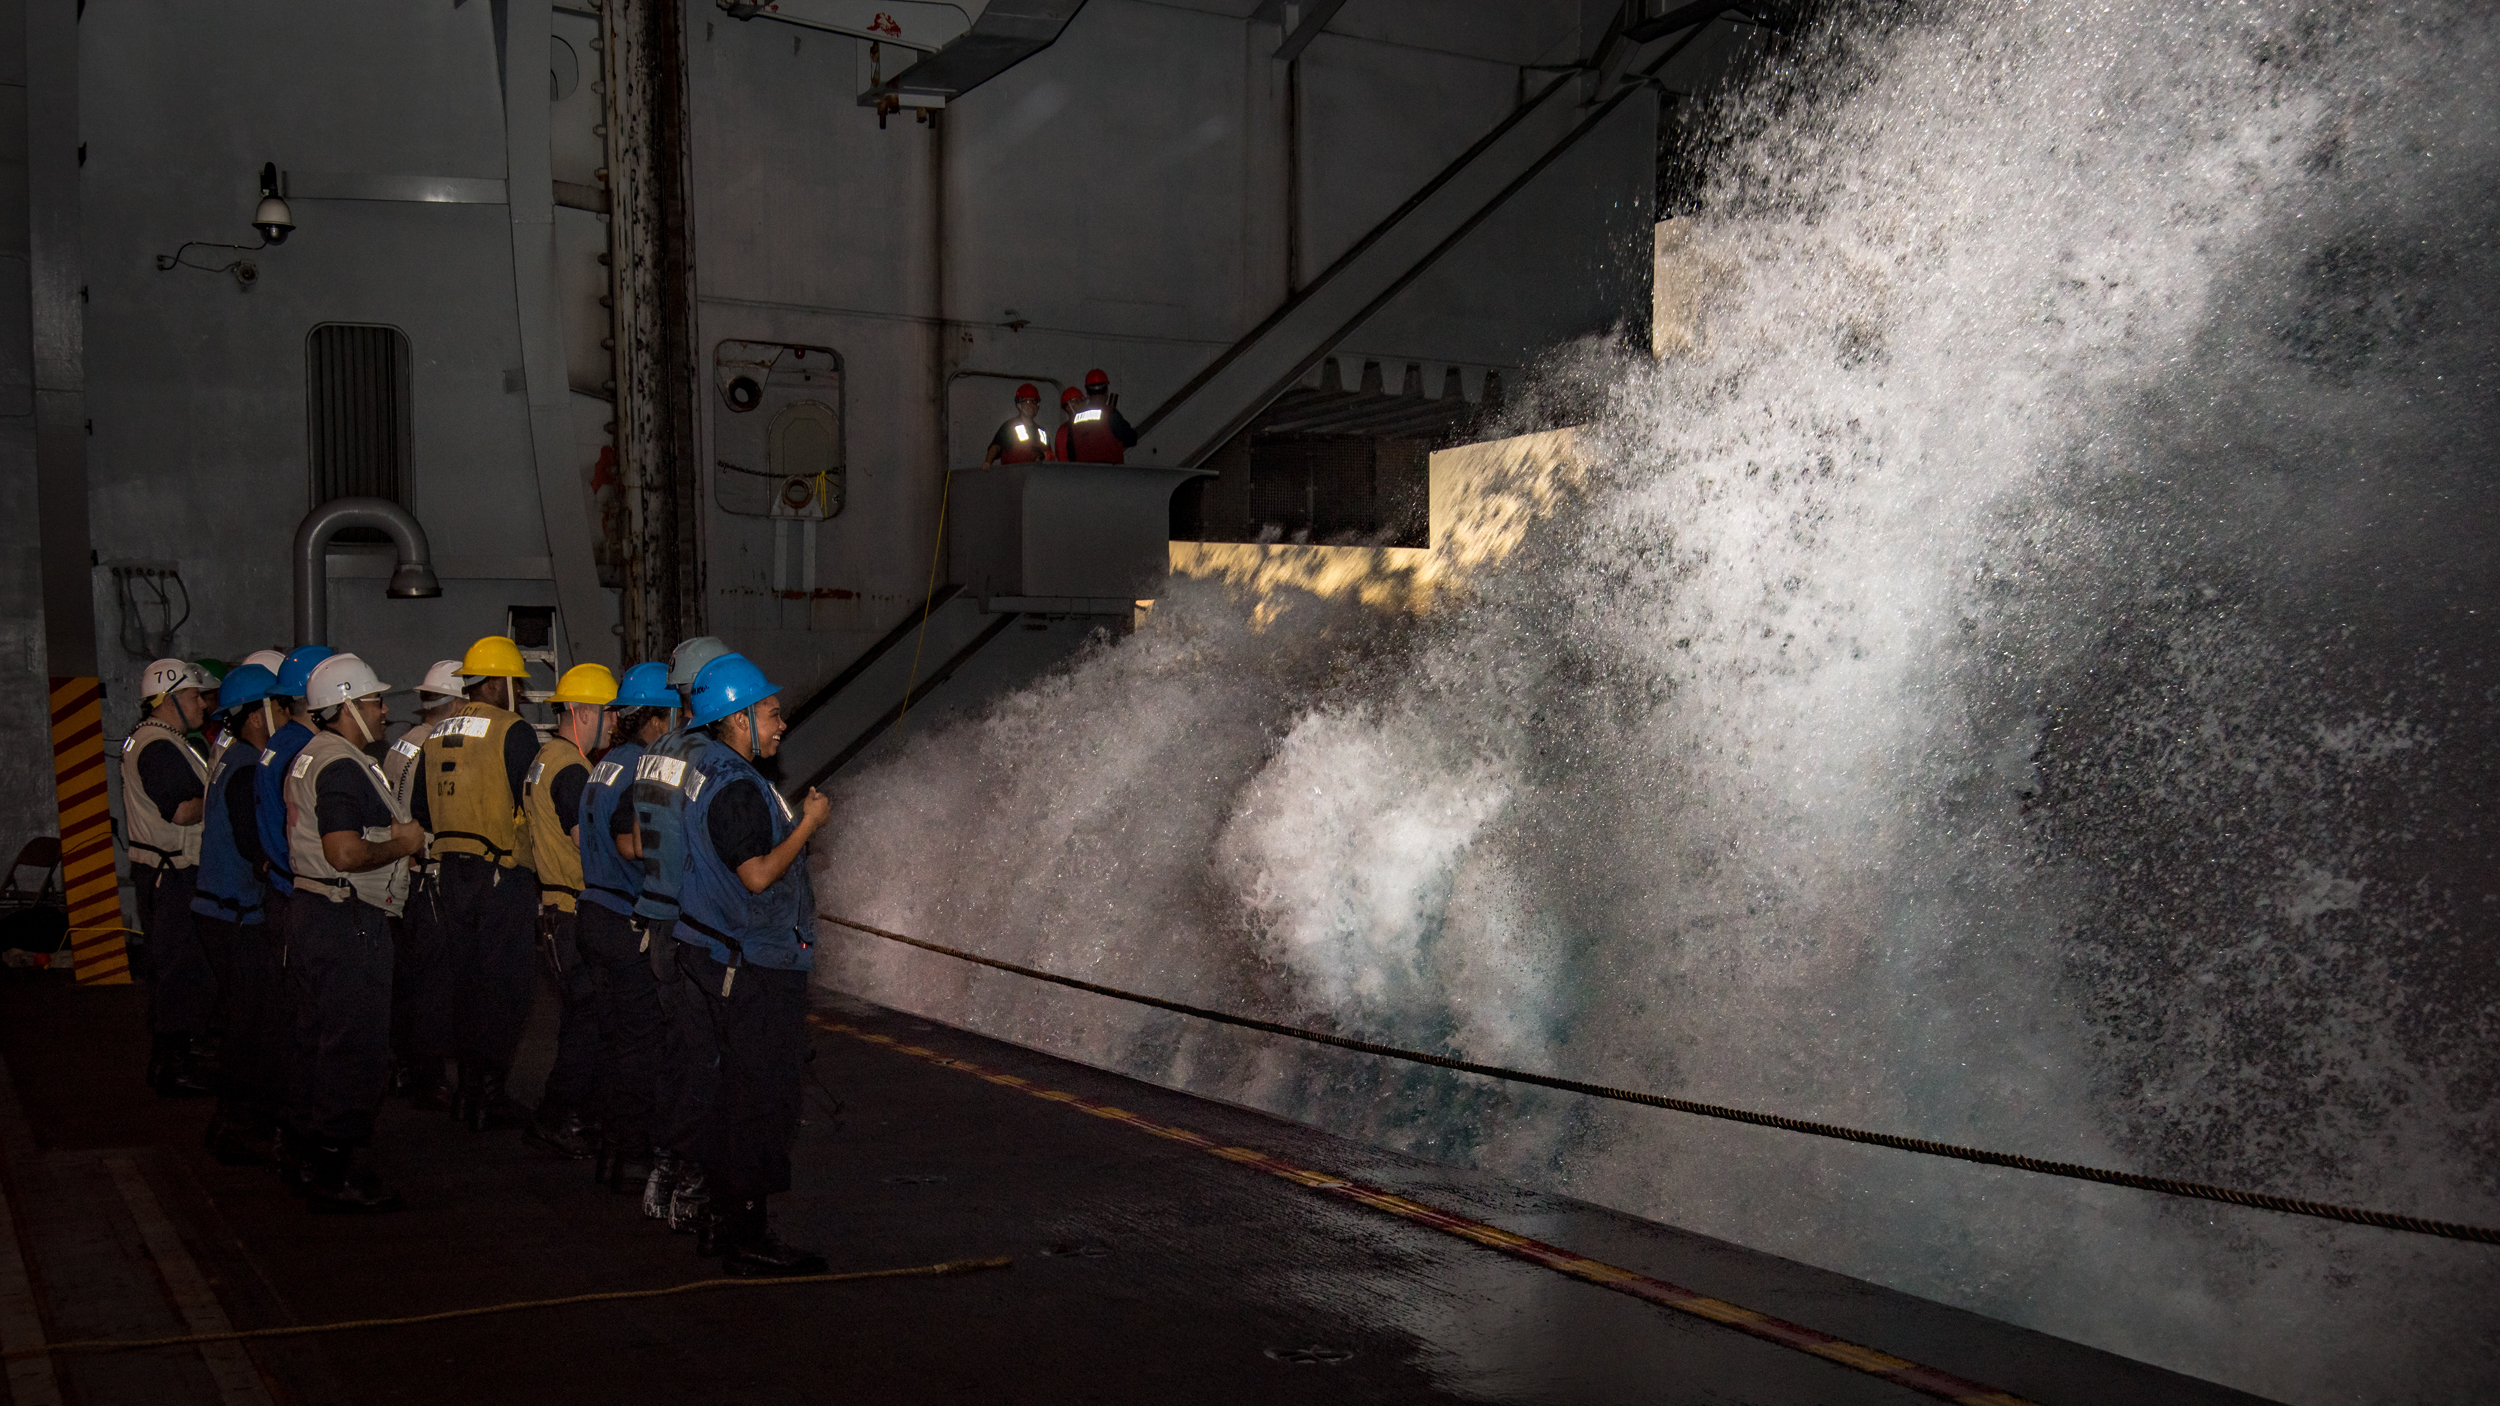 Sailors aboard Nimitz-class aircraft carrier USS Carl Vinson (CVN 70) watch as a wave crashes into the hangar bay during a replenishment-at-sea with Fleet Replenishment Oiler USNS Yukon (T-AO 202). U.S. Navy Photo by Mass Communication Specialist 3rd Class Kurtis A. Hatcher